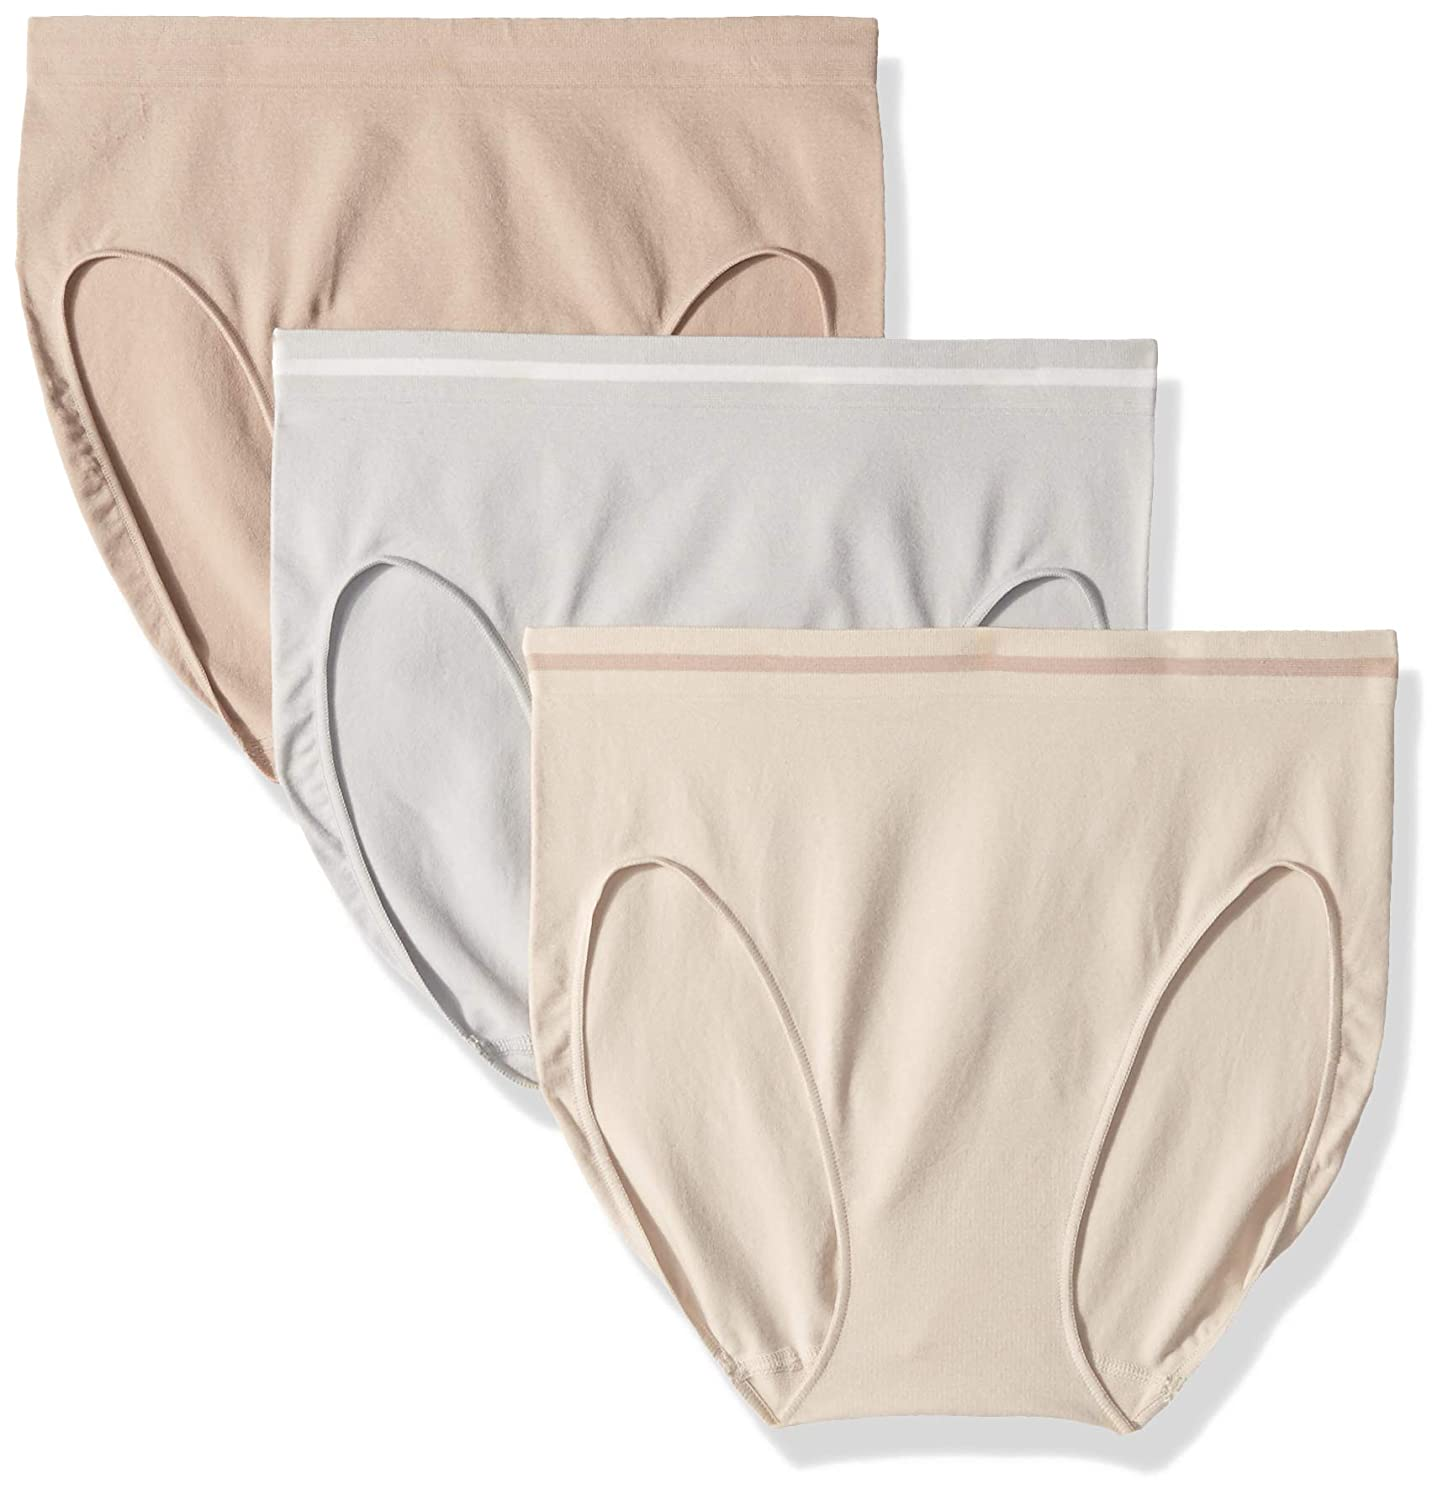 0e50d4d82358 Ellen Tracy Women's 3 Pack Seamless Tipping Hi Cut Panty: Amazon.in:  Clothing & Accessories